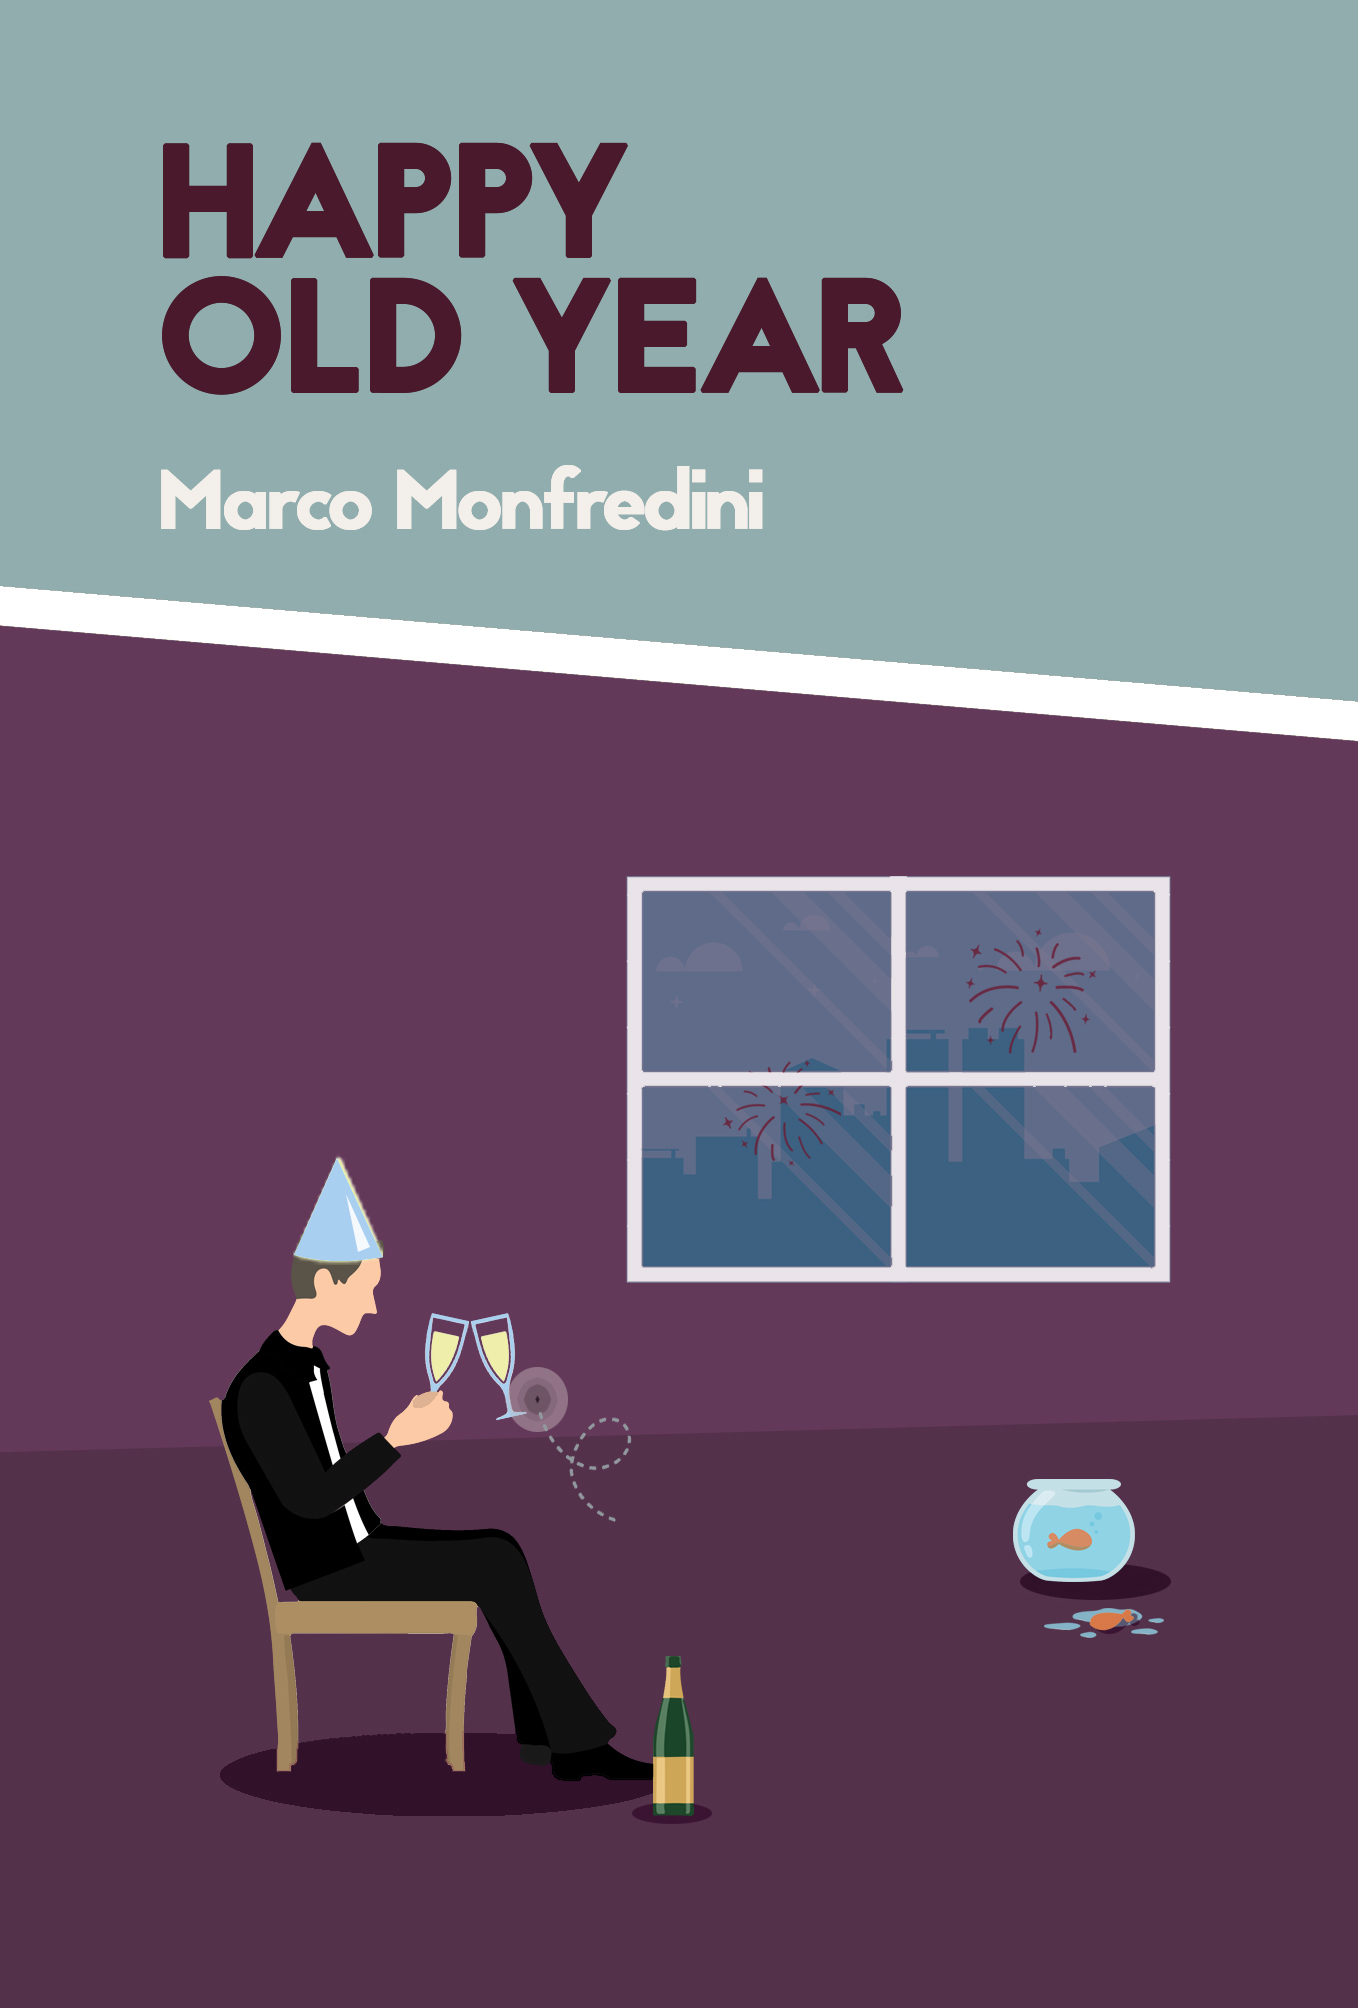 marco-monfredini-happy-old-year